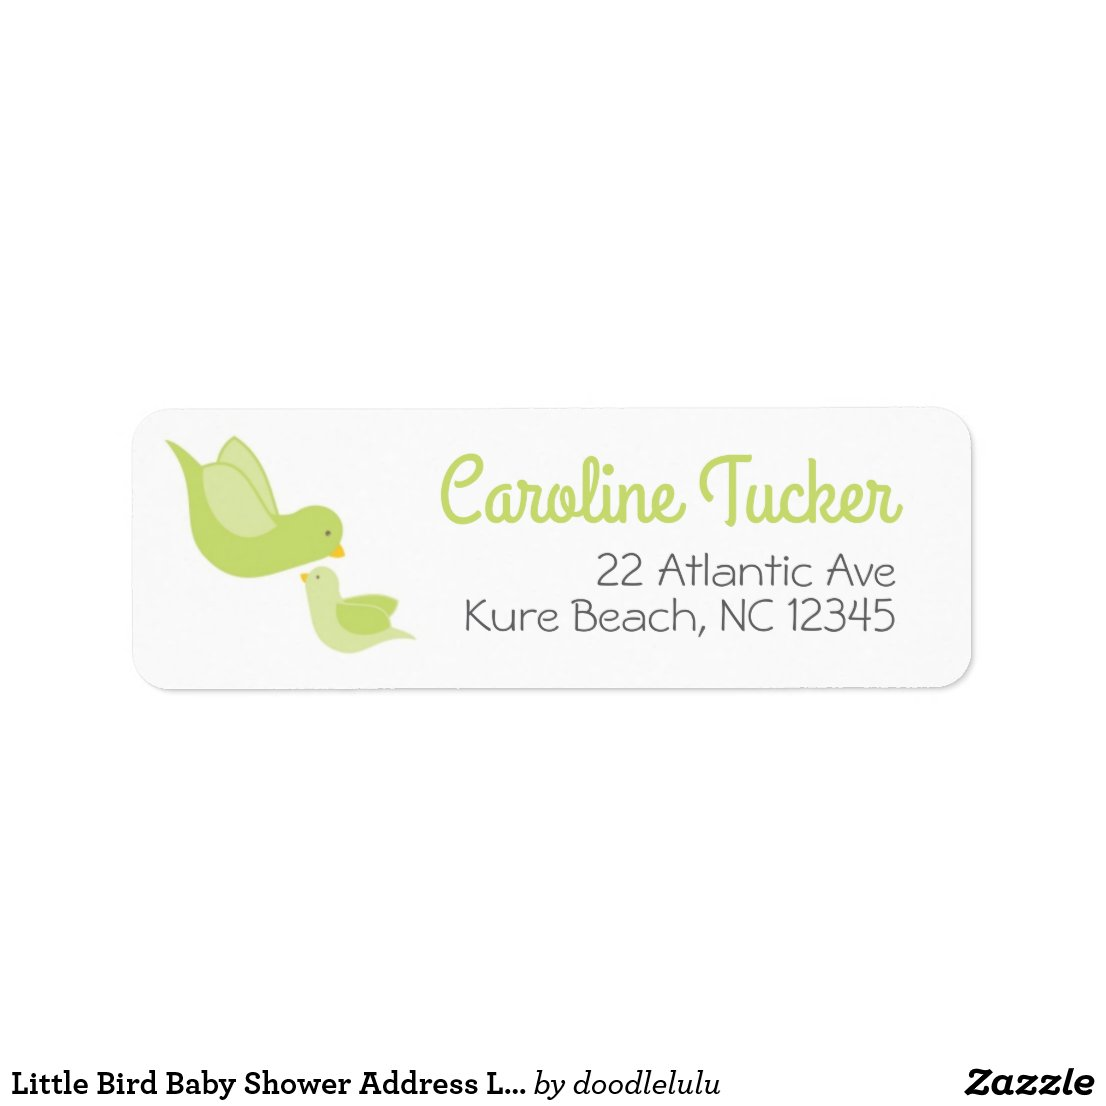 Little Bird Baby Shower Address Label green gray